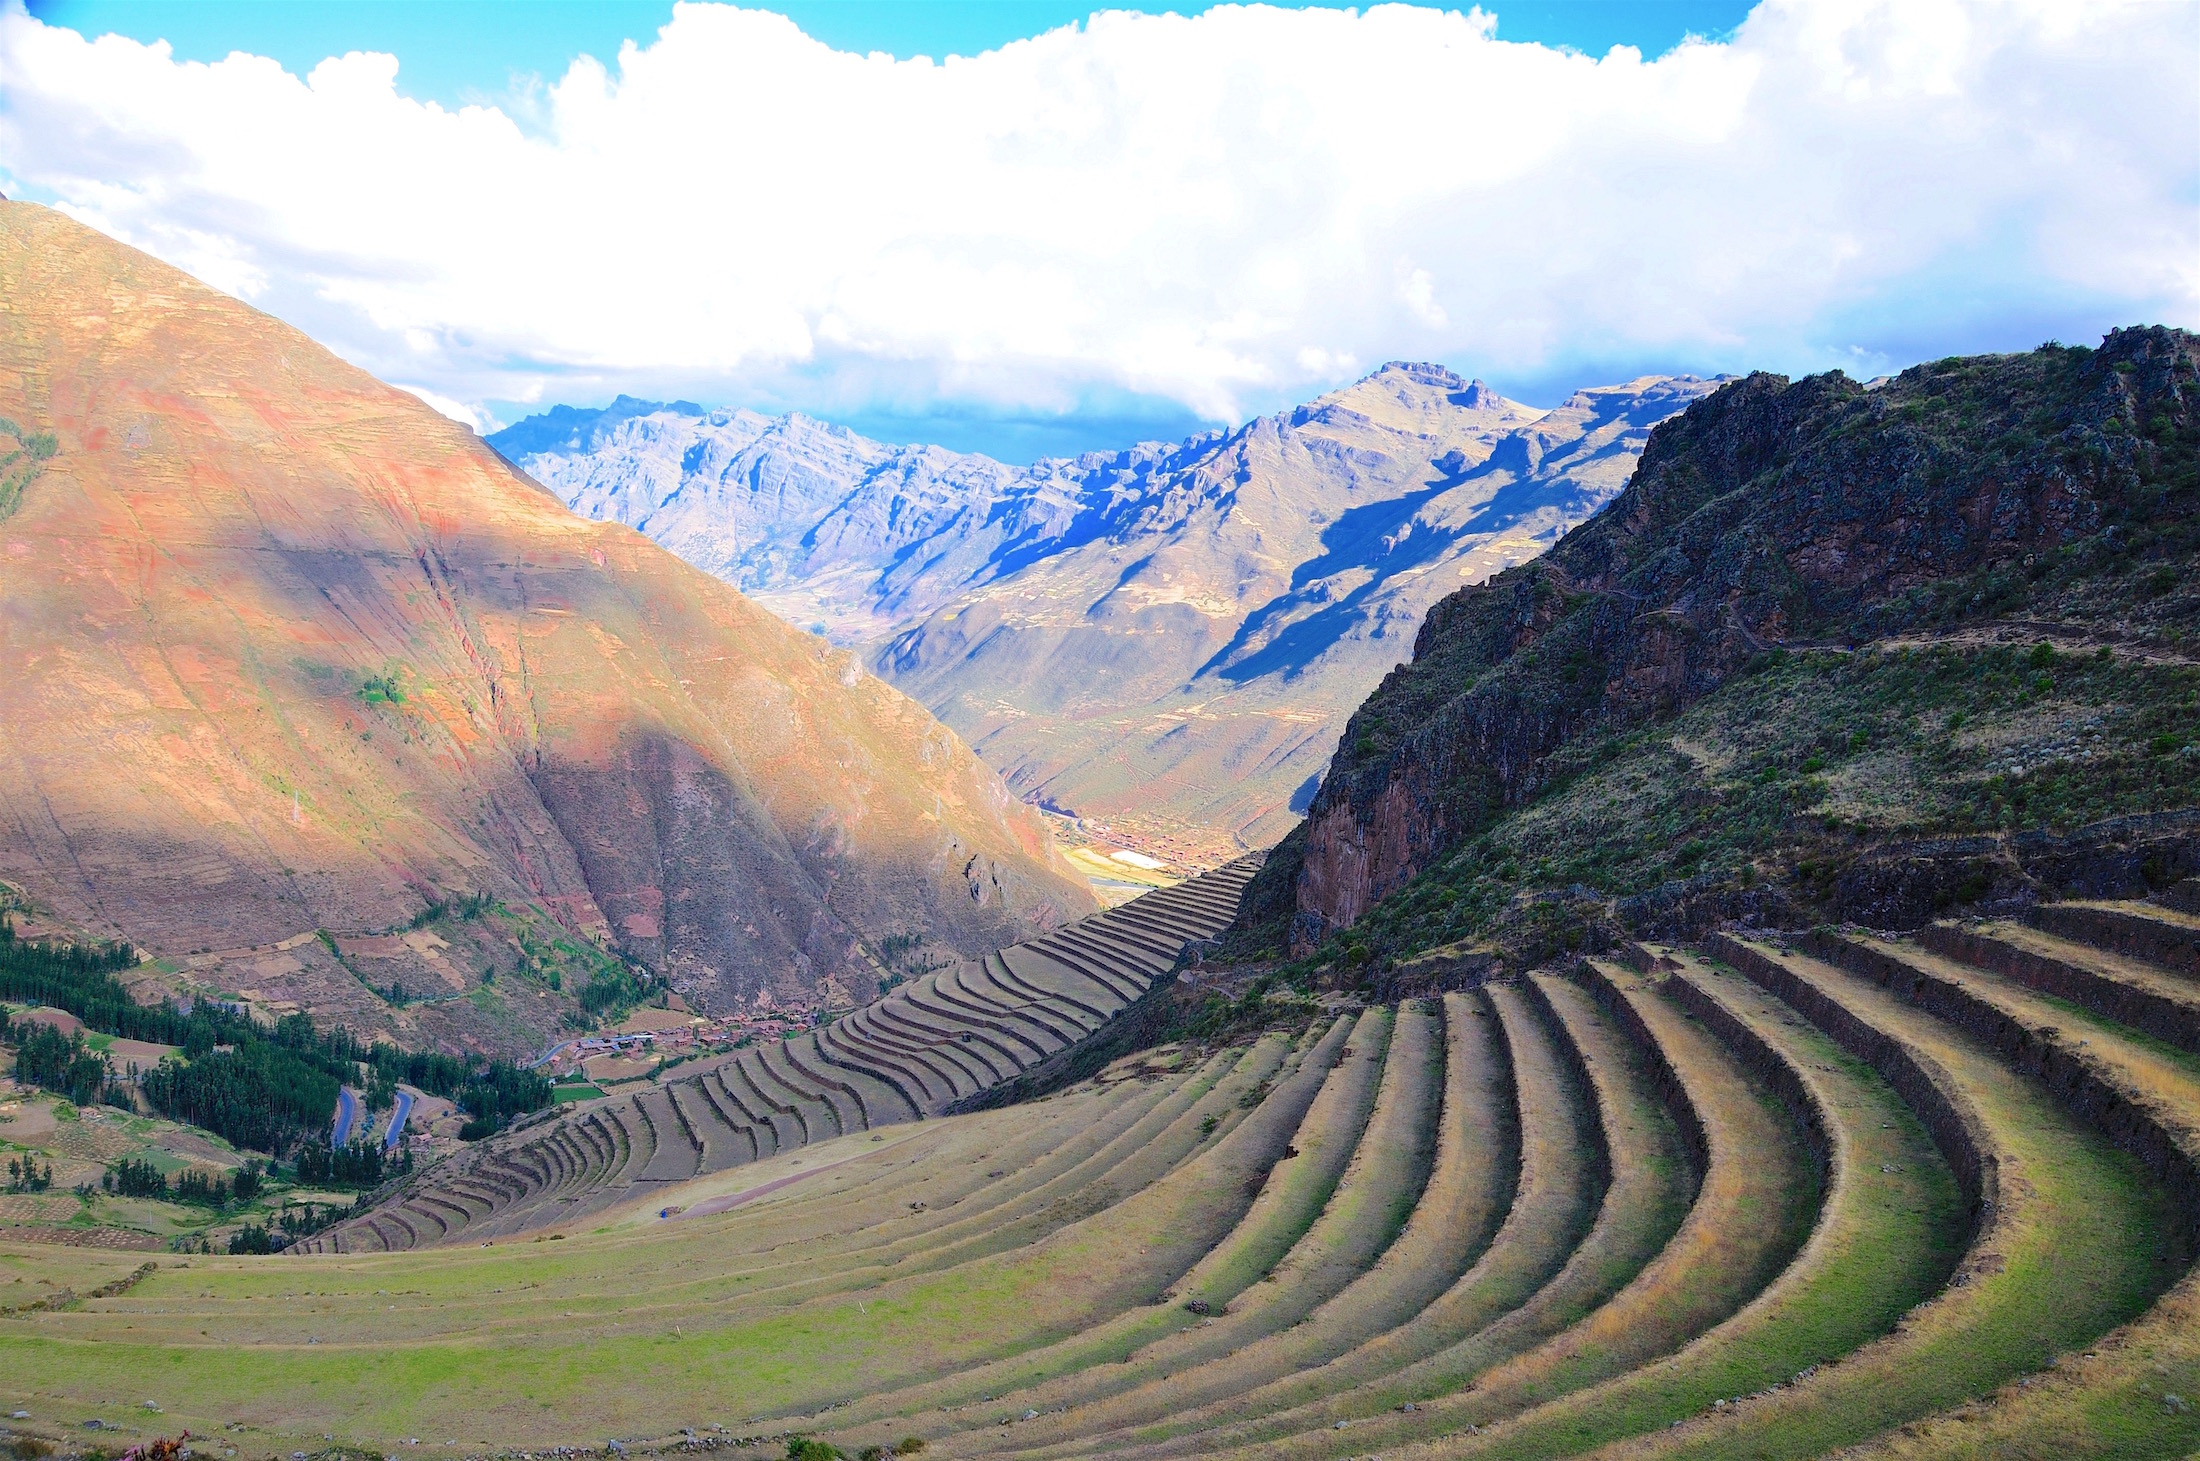 Incan Agricultural Terraces (Pisac)